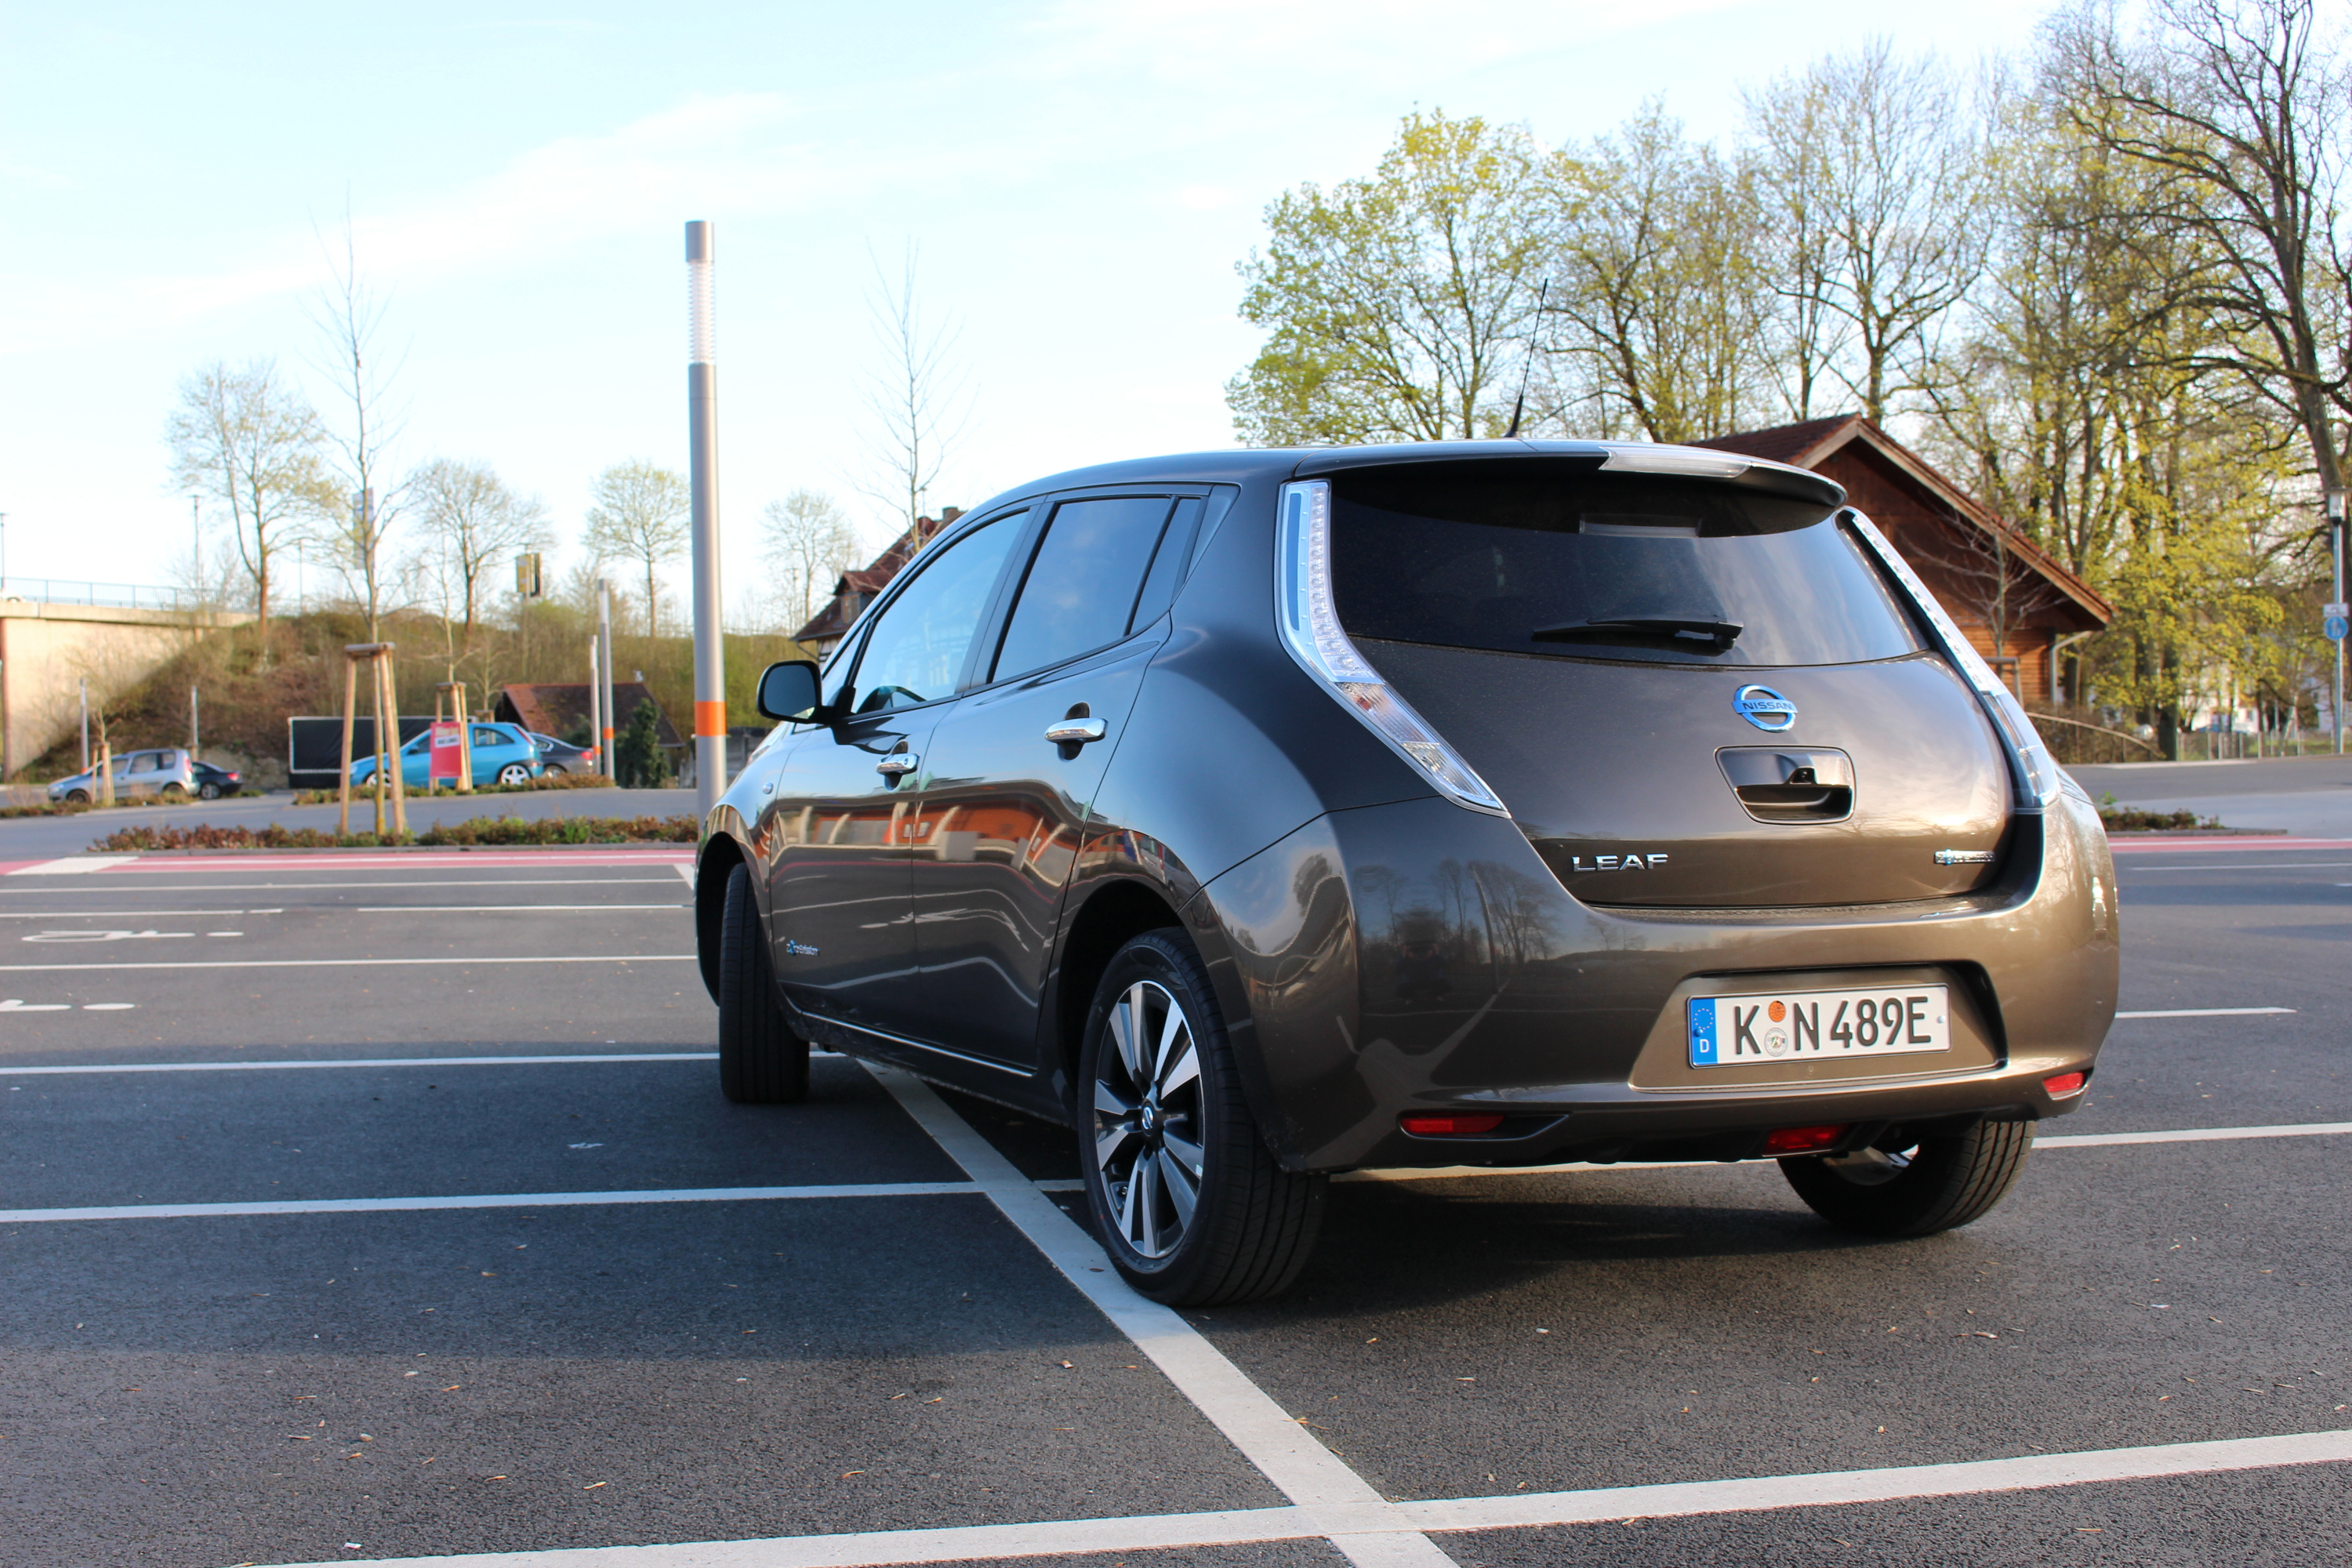 test des 2016er 30 kwh nissan leaf ein zwischenfazit elektroauto blog. Black Bedroom Furniture Sets. Home Design Ideas